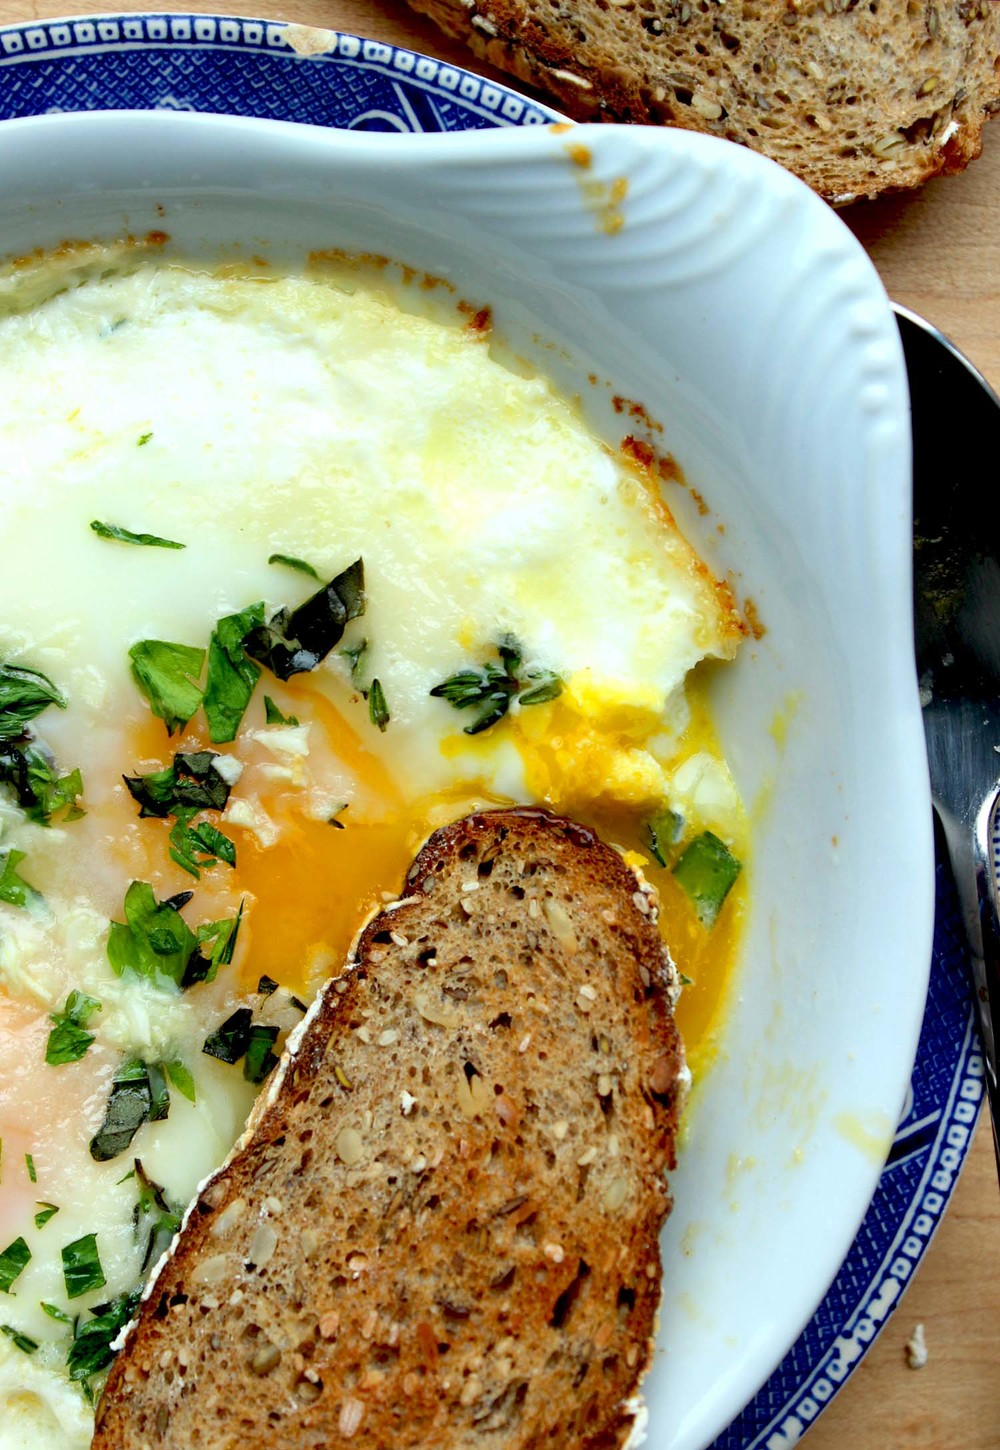 Herb Baked Eggs  | Image:  Laura Messersmith